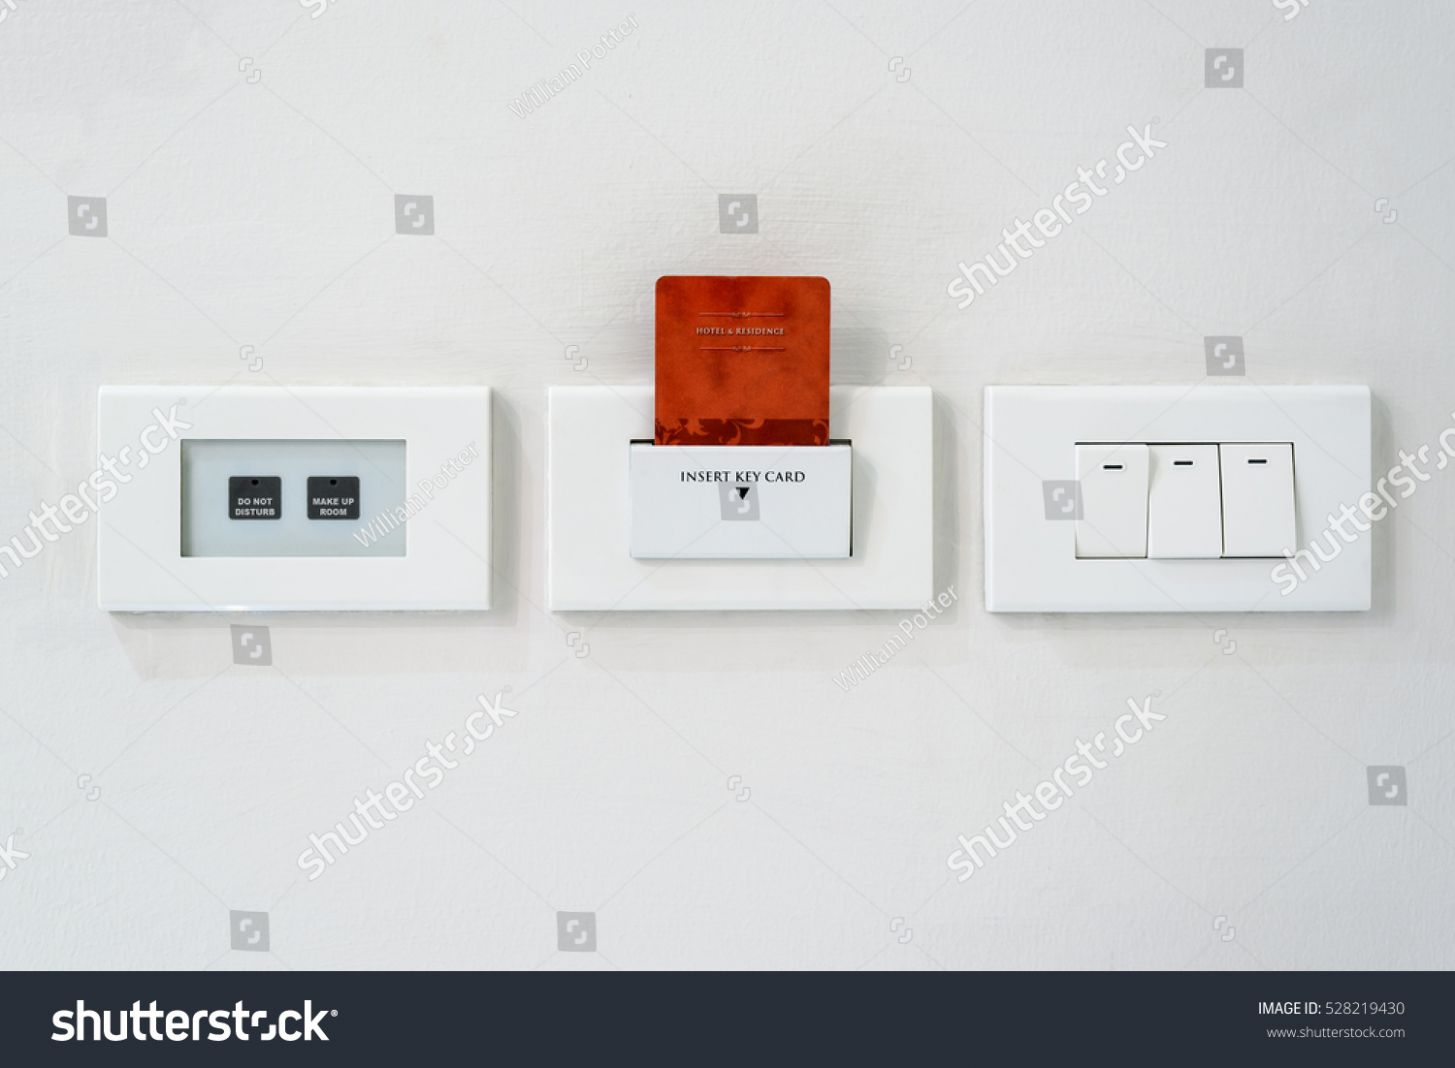 Switches Buttons Slot Inserting Access Card Stock Photo (Edit Now ...